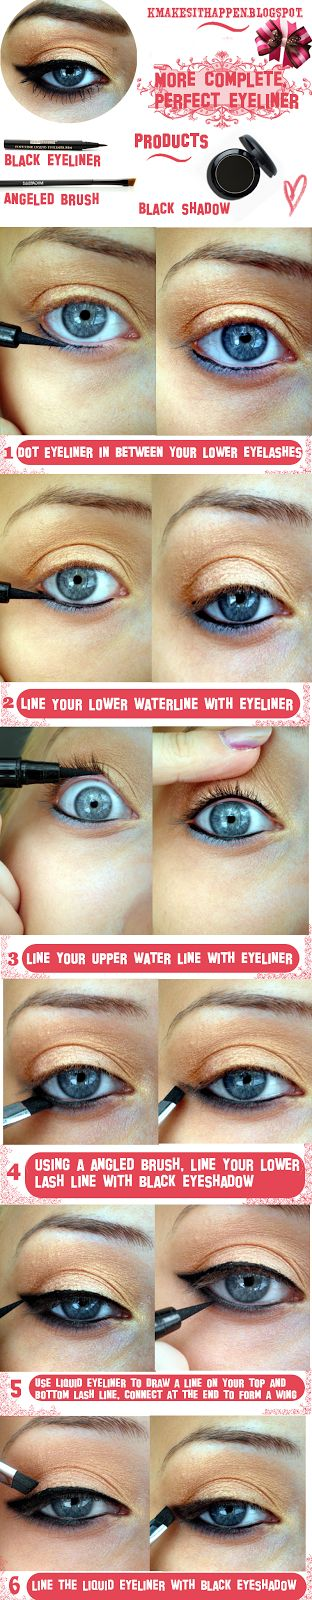 makeup magic – More perfect, complete eyeliner